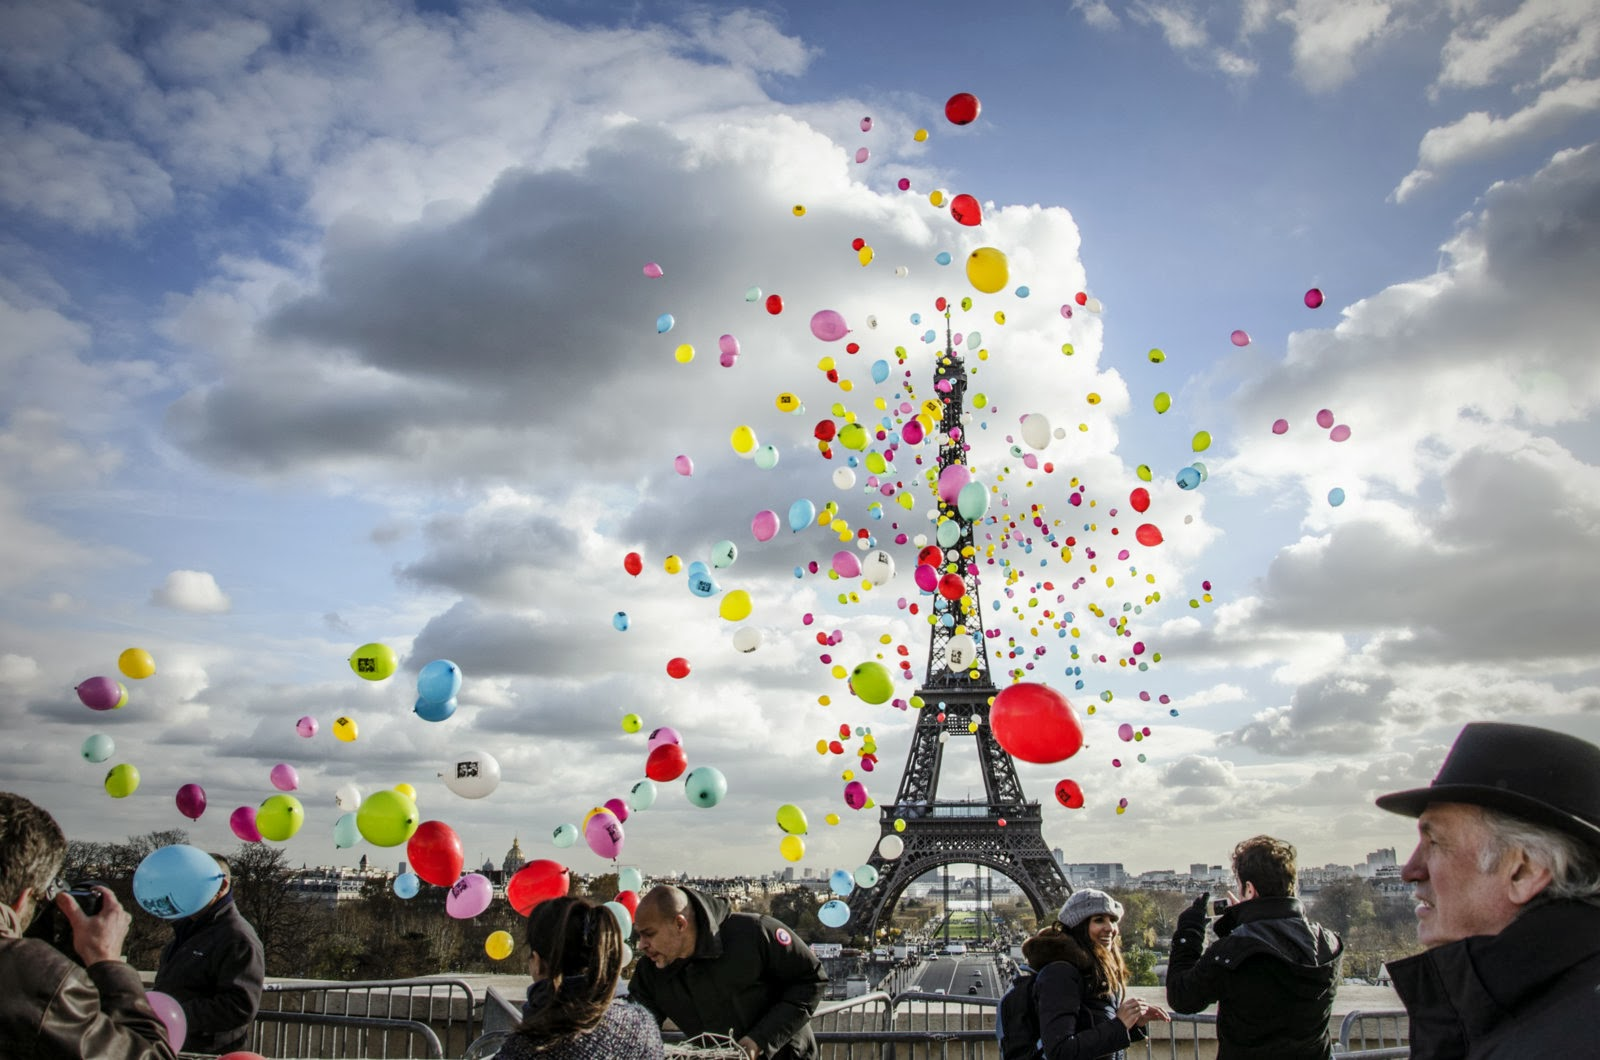 Flambant neuf ParisDailyPhoto: Releasing balloons by the Eiffel Tower QT62